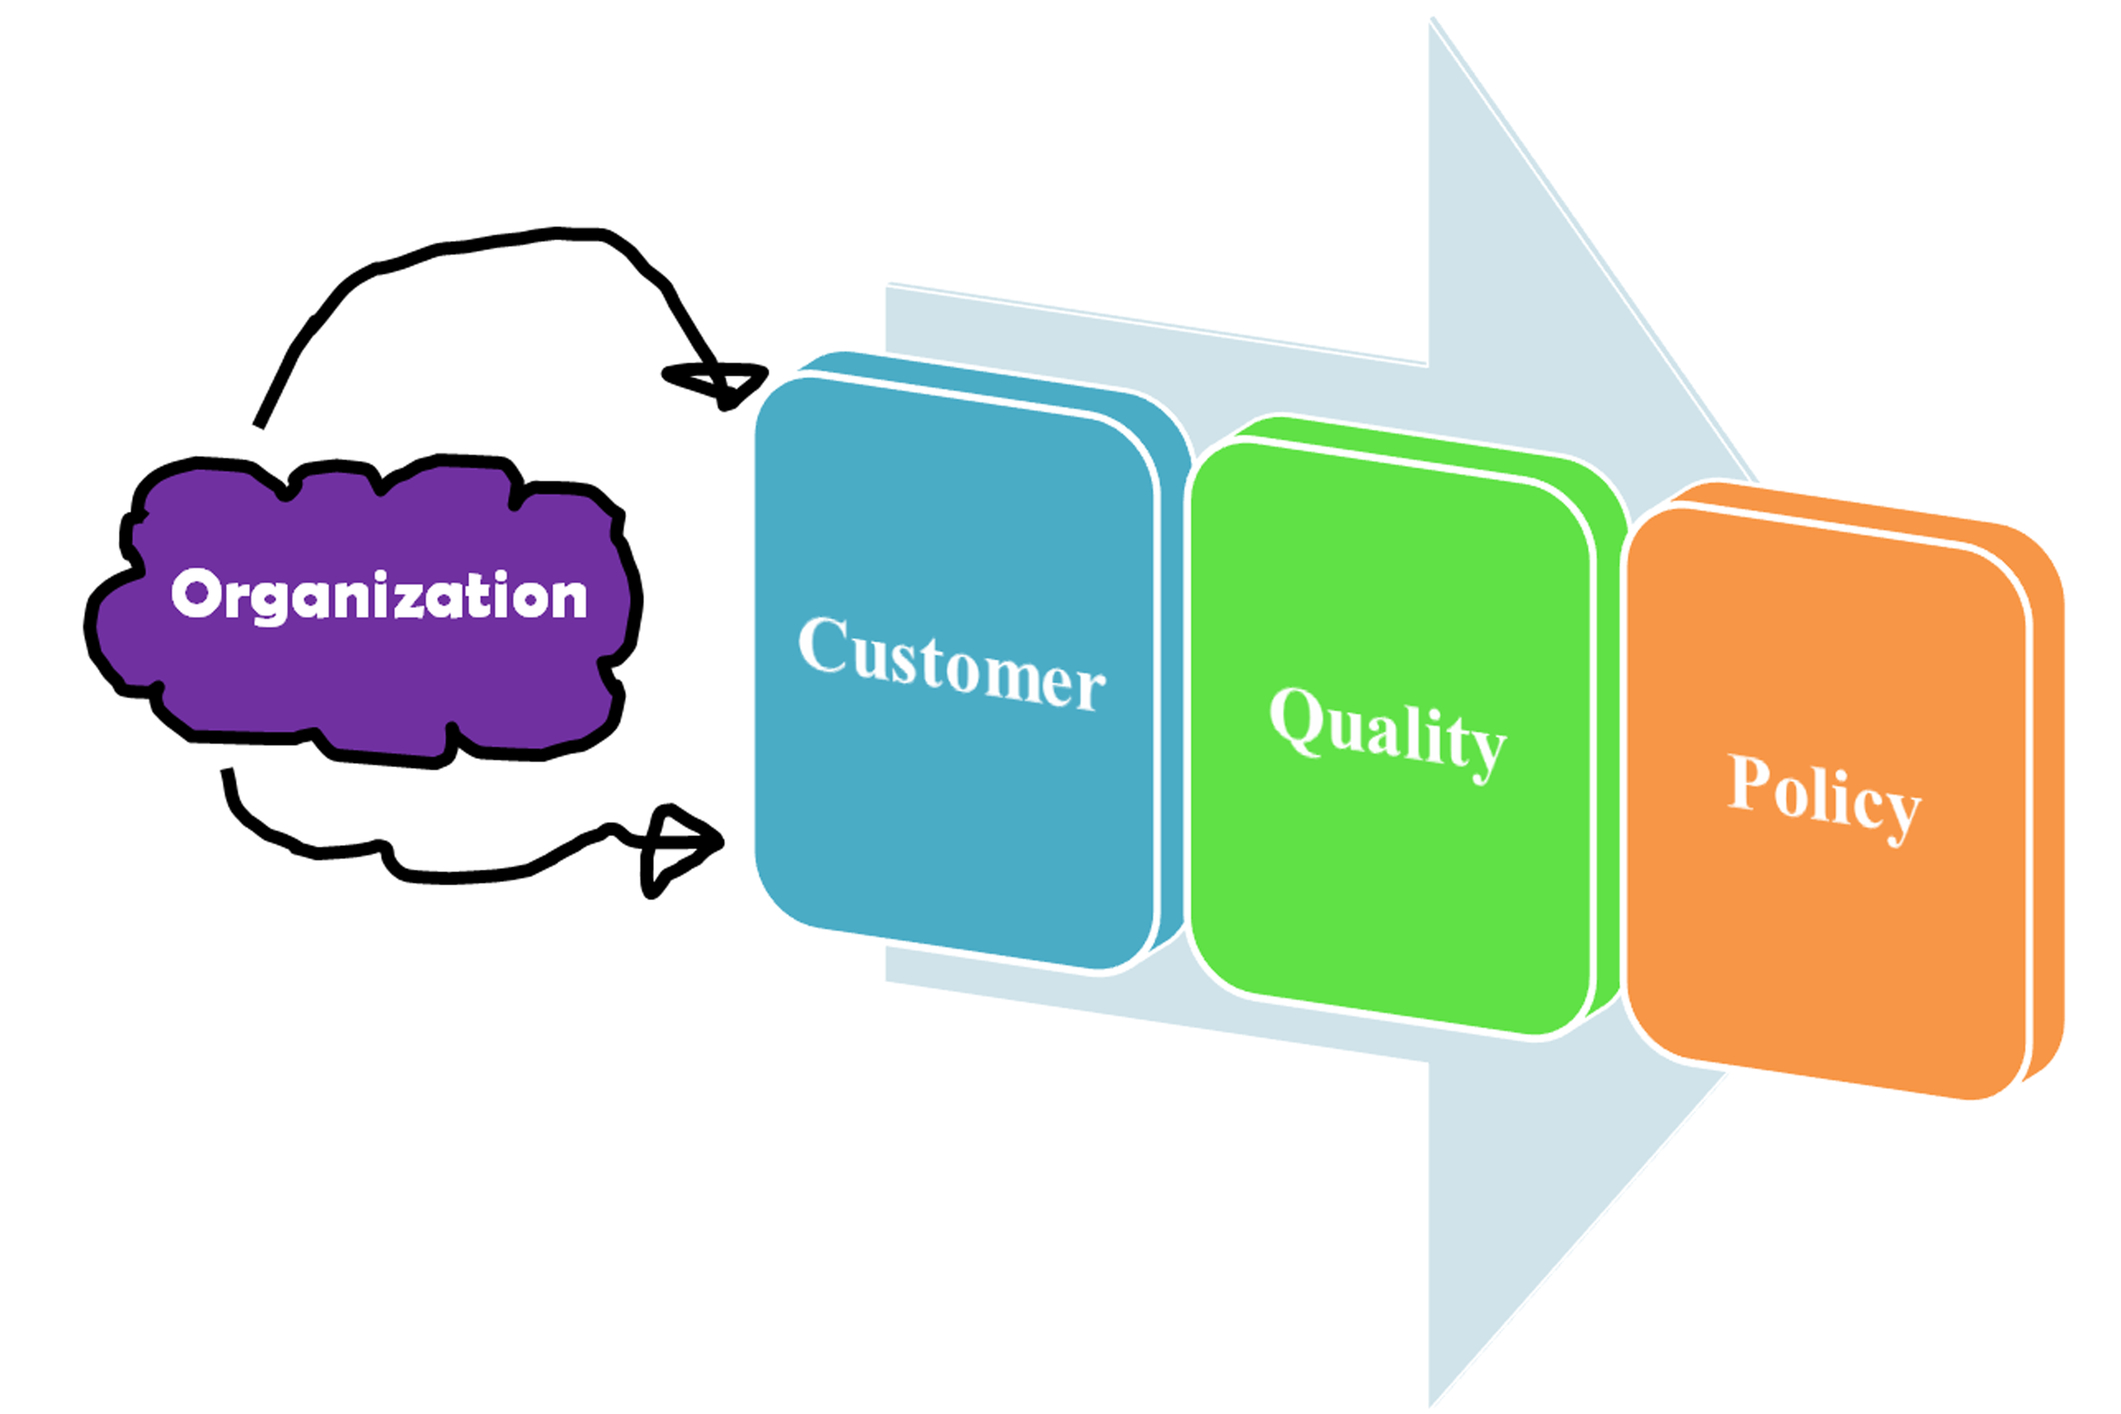 house of quality six sigma diagram mercruiser 4 3 alternator wiring article interesting relation between 5s and kaizen